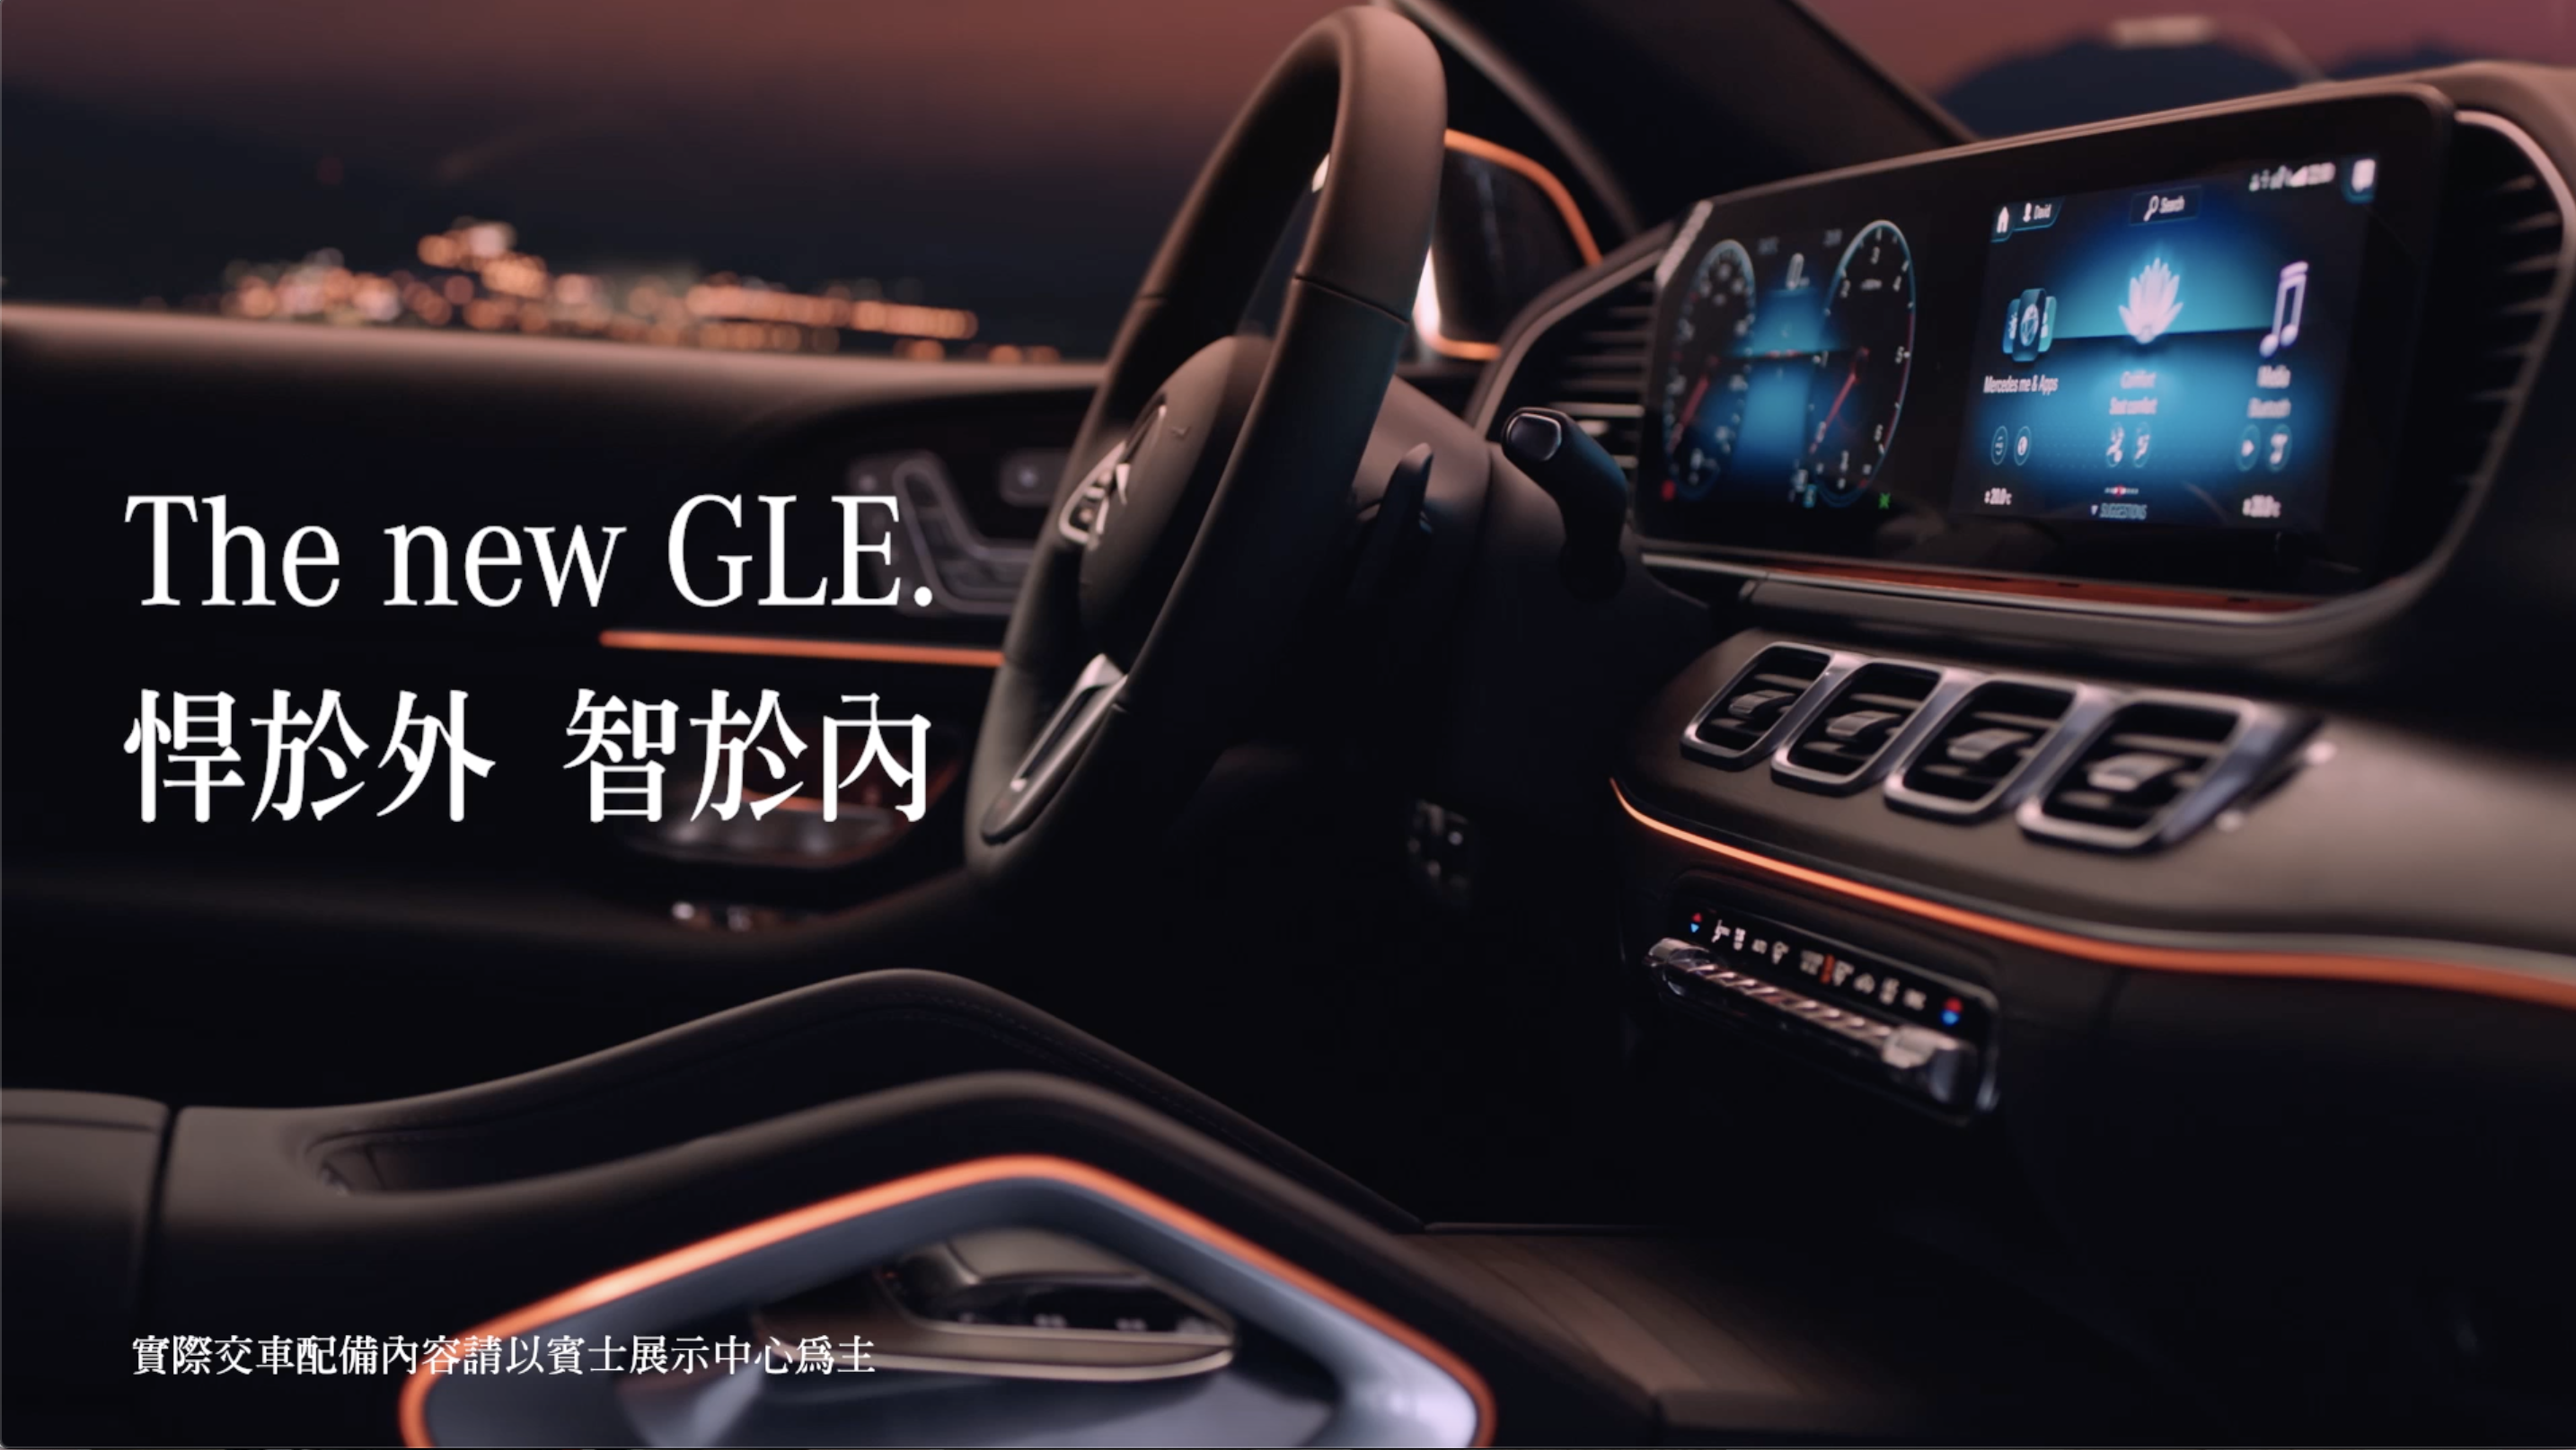 The new Mercedes-Benz GLE 悍於外 智於內